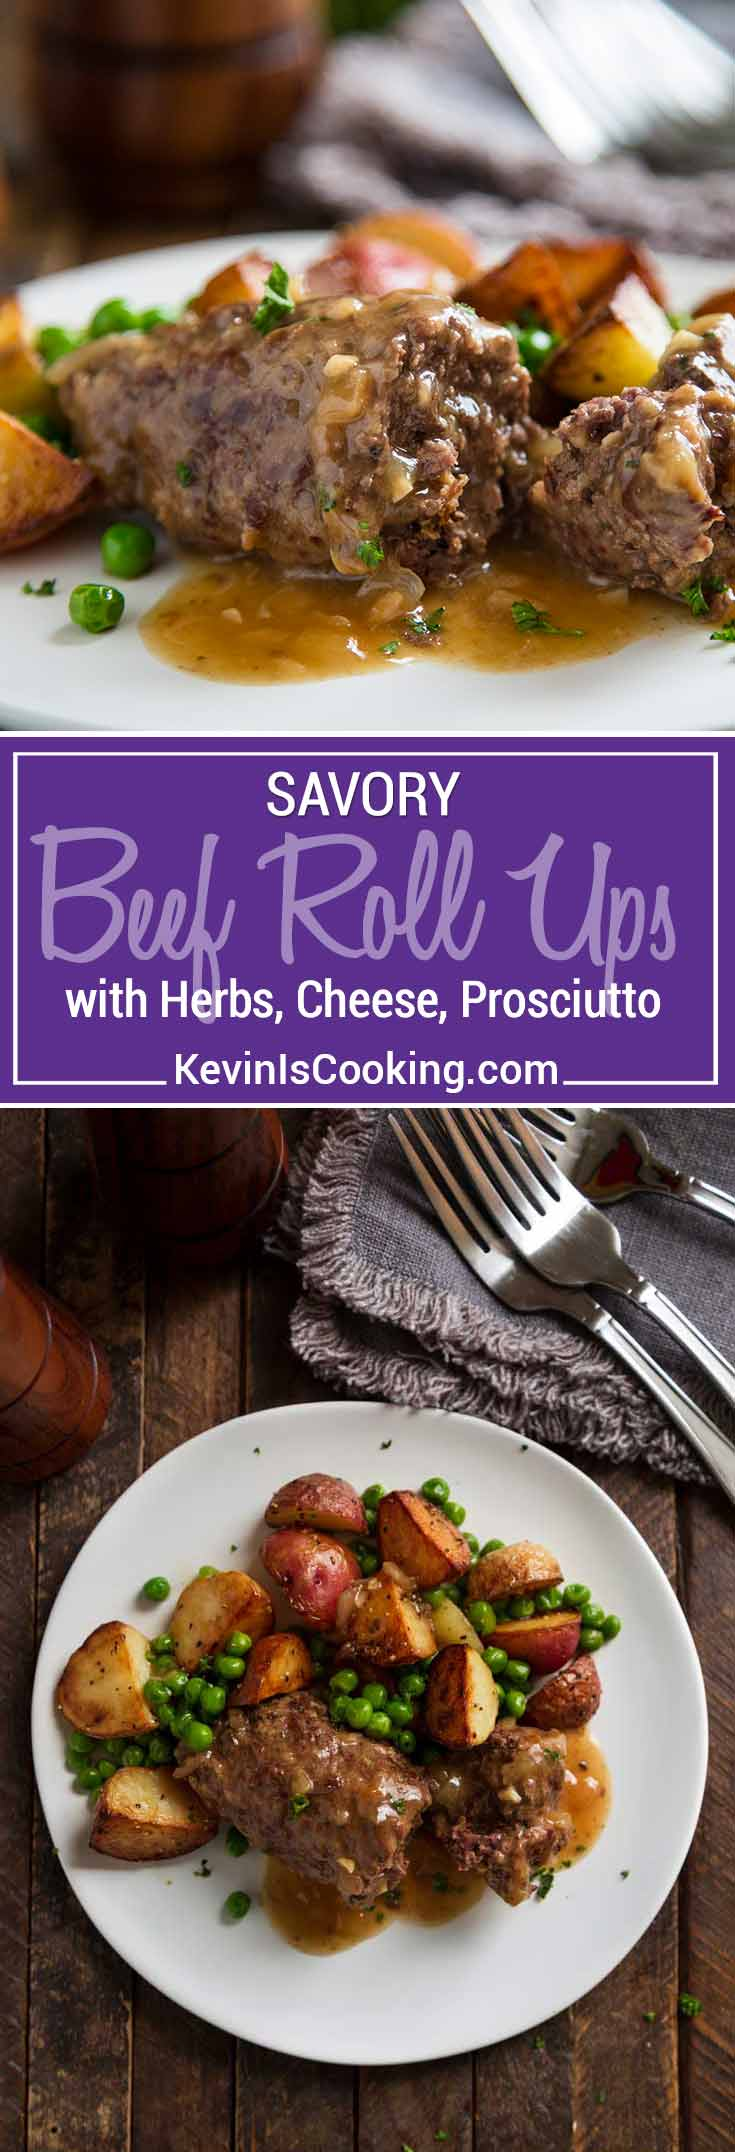 Beef Roll Ups - Top round steak gets pounded thin, spread with an herb and cheese paste, prosciutto, rolled and sautéed - so delicious. Sauce is amazing!